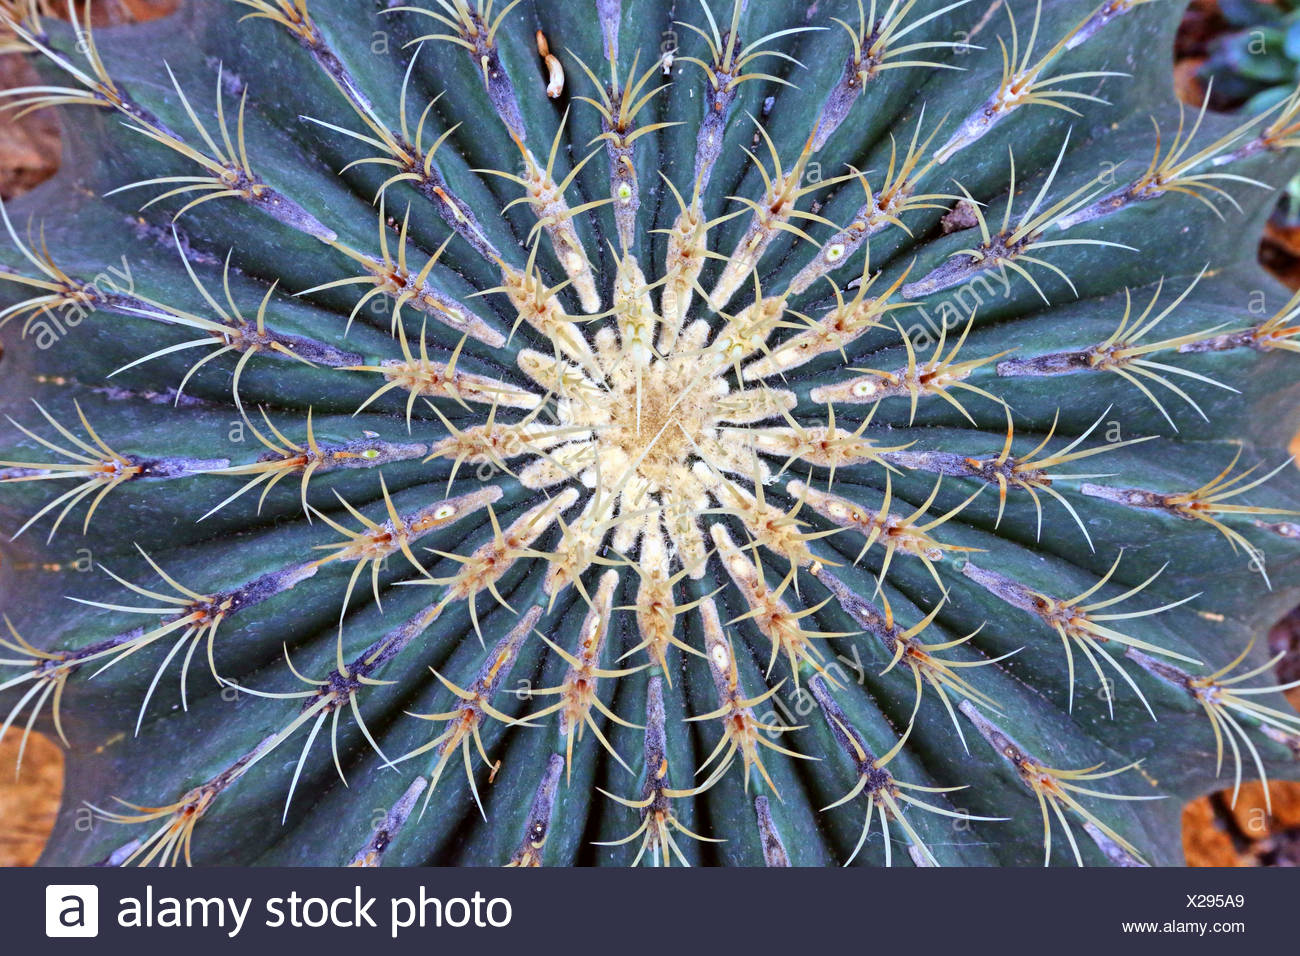 Xerophyt stock photos xerophyt stock images alamy for Feroxcactus chile